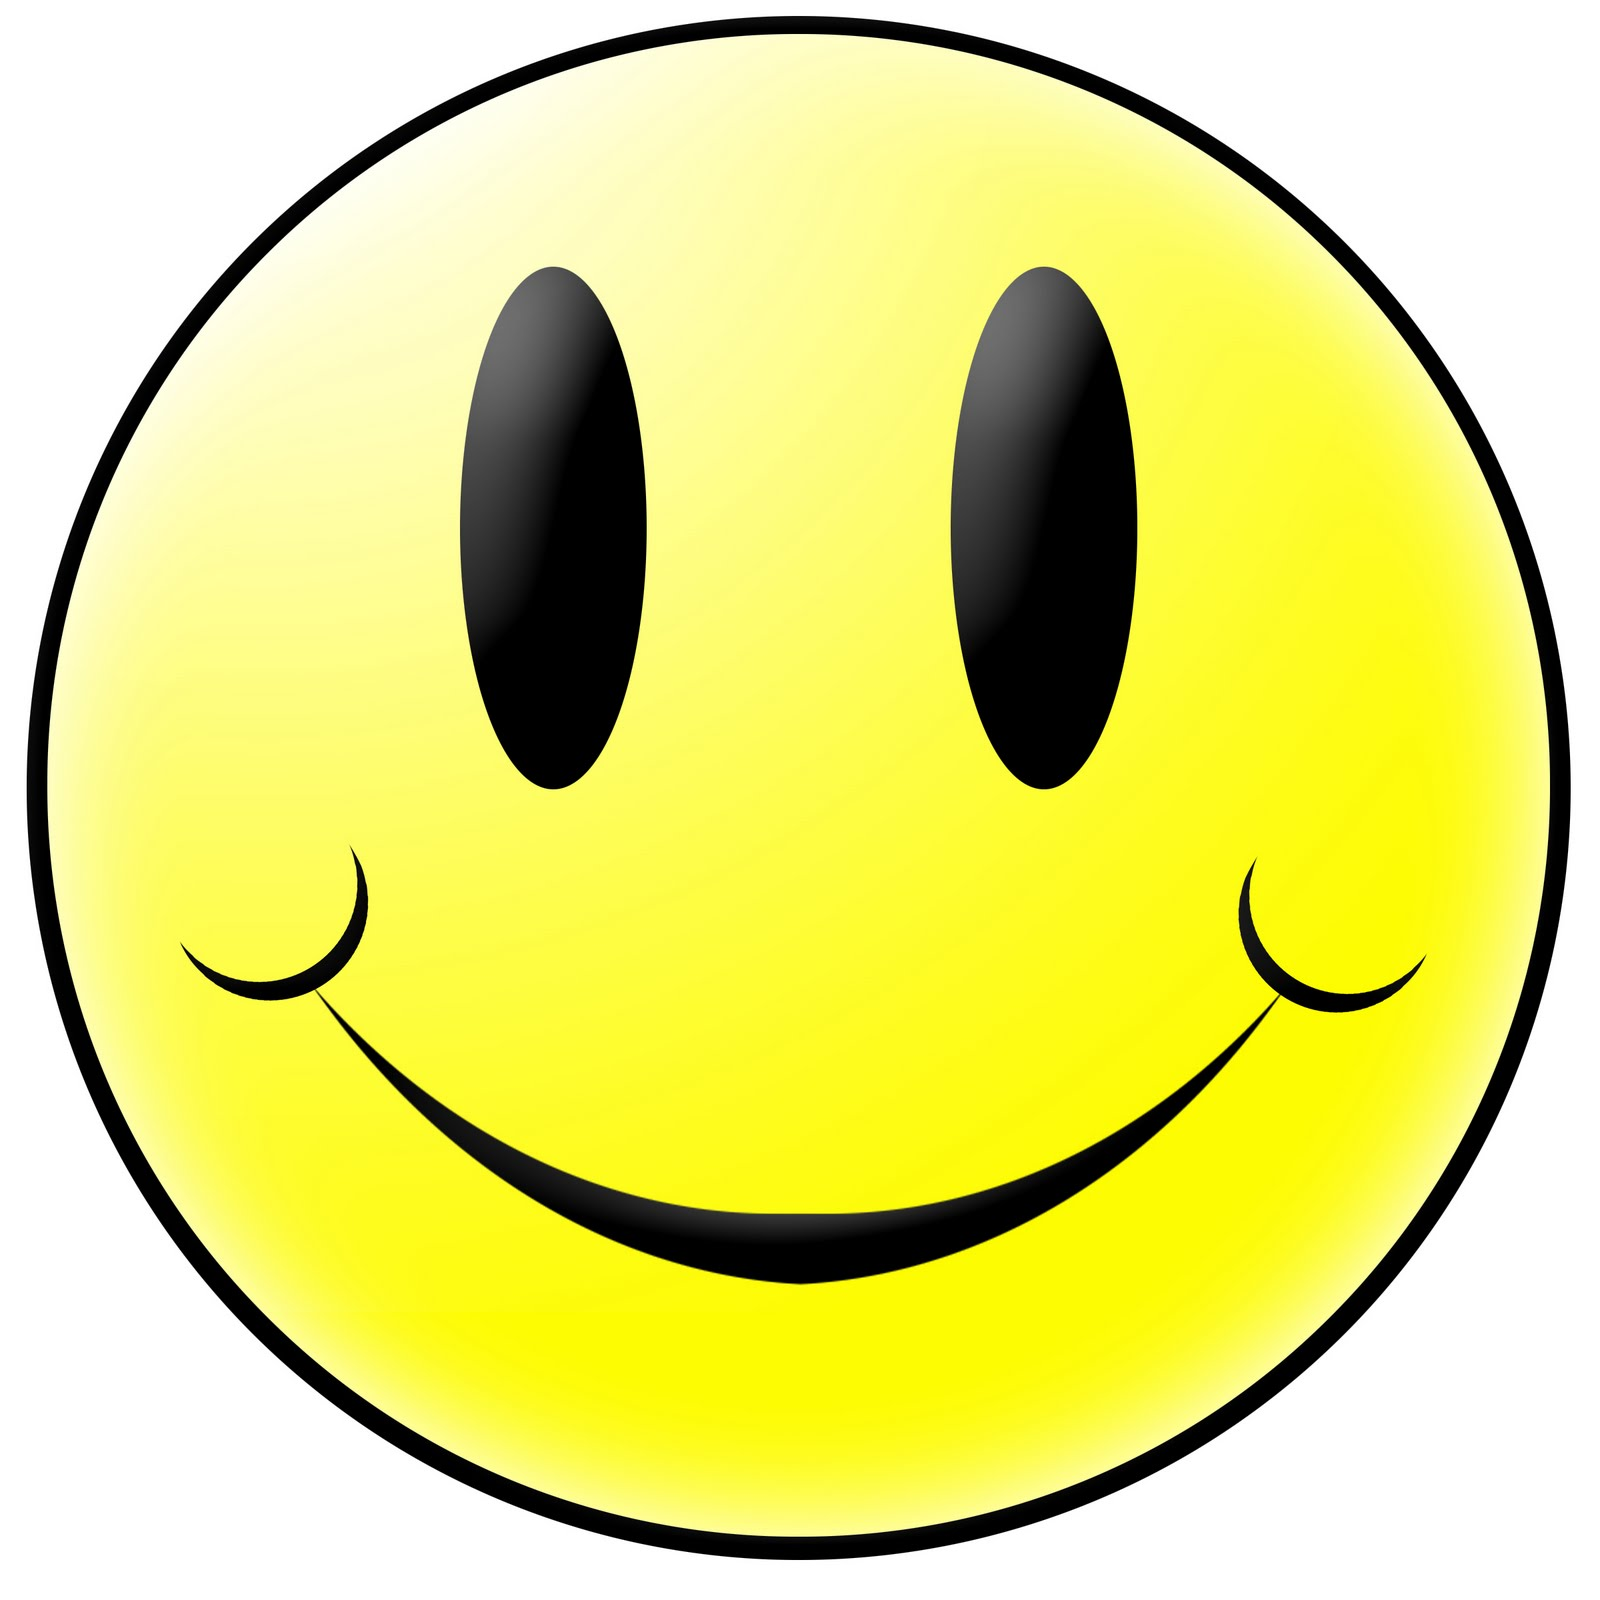 Smiley clipart cartoon Face Free Art Clip Smiley